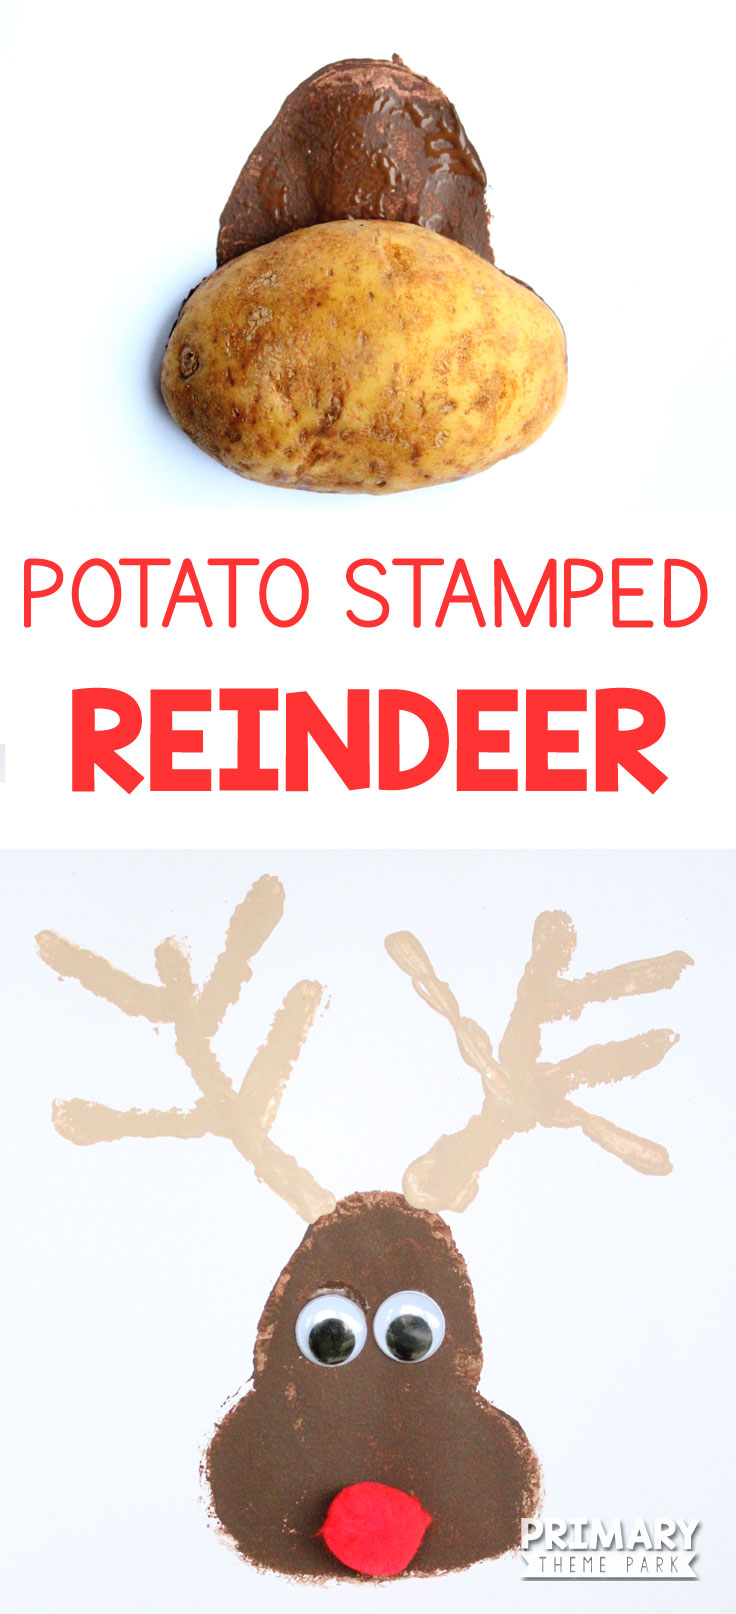 Want an adorable Christmas craft in a short amount of time? Make this easy potato stamped reindeer craft in just a few minutes!